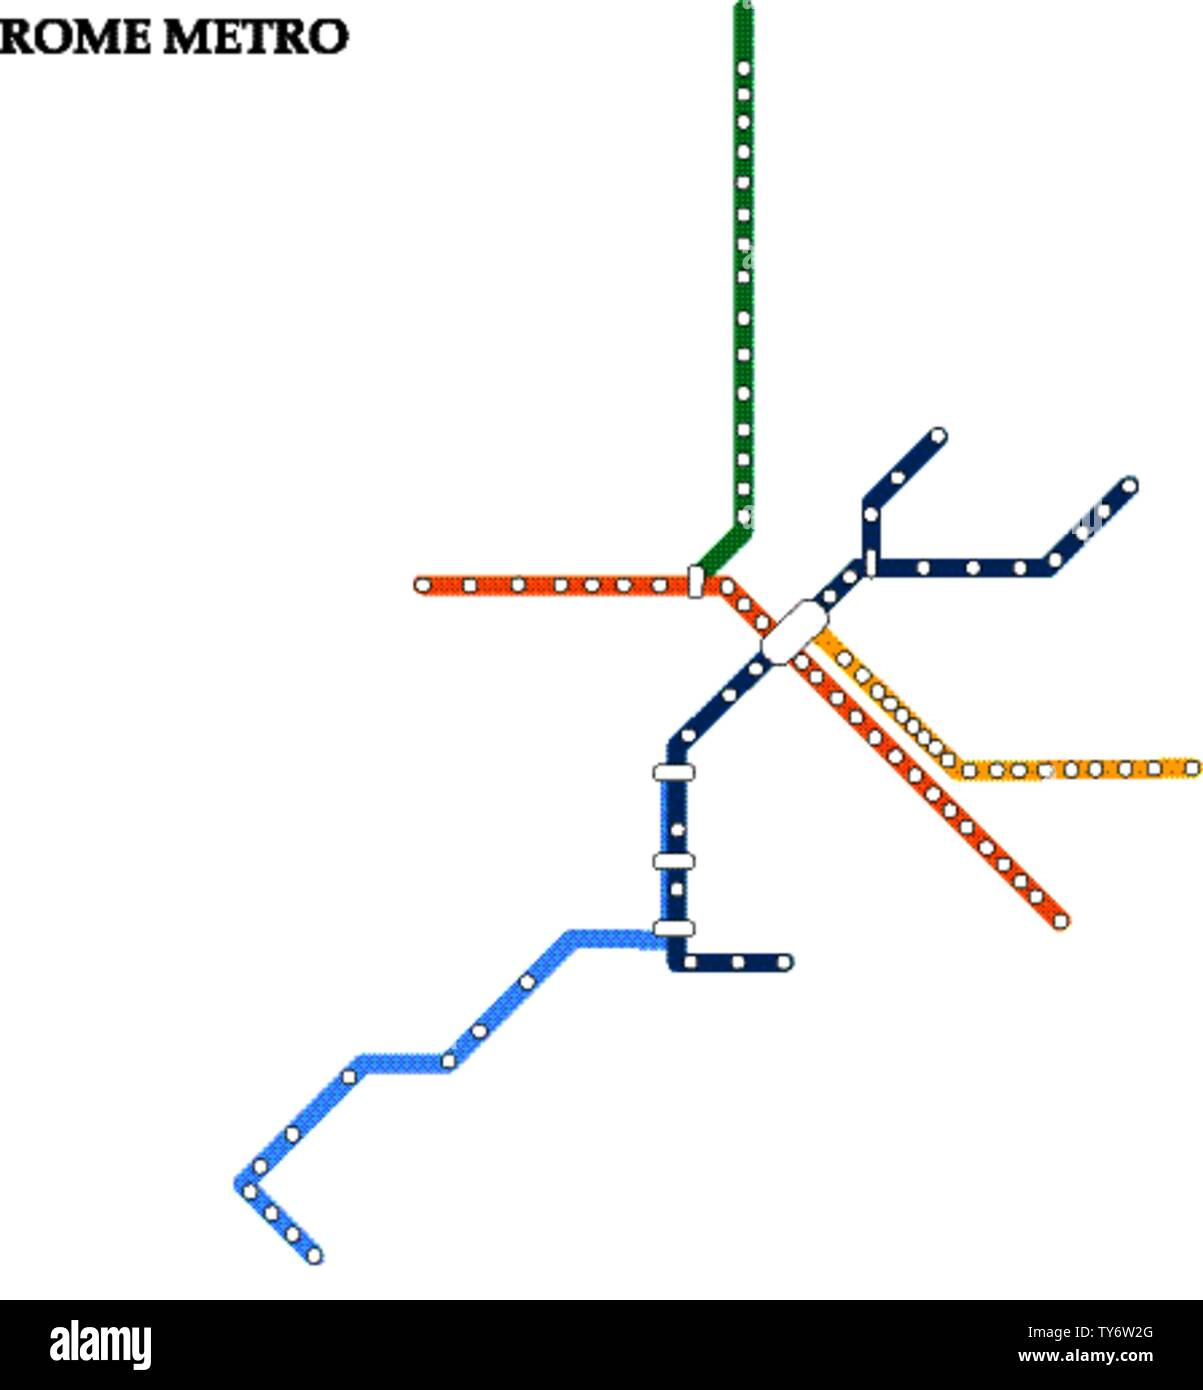 Map of the Rome metro, Subway, Template of city transportation scheme for underground road. Stock Vector